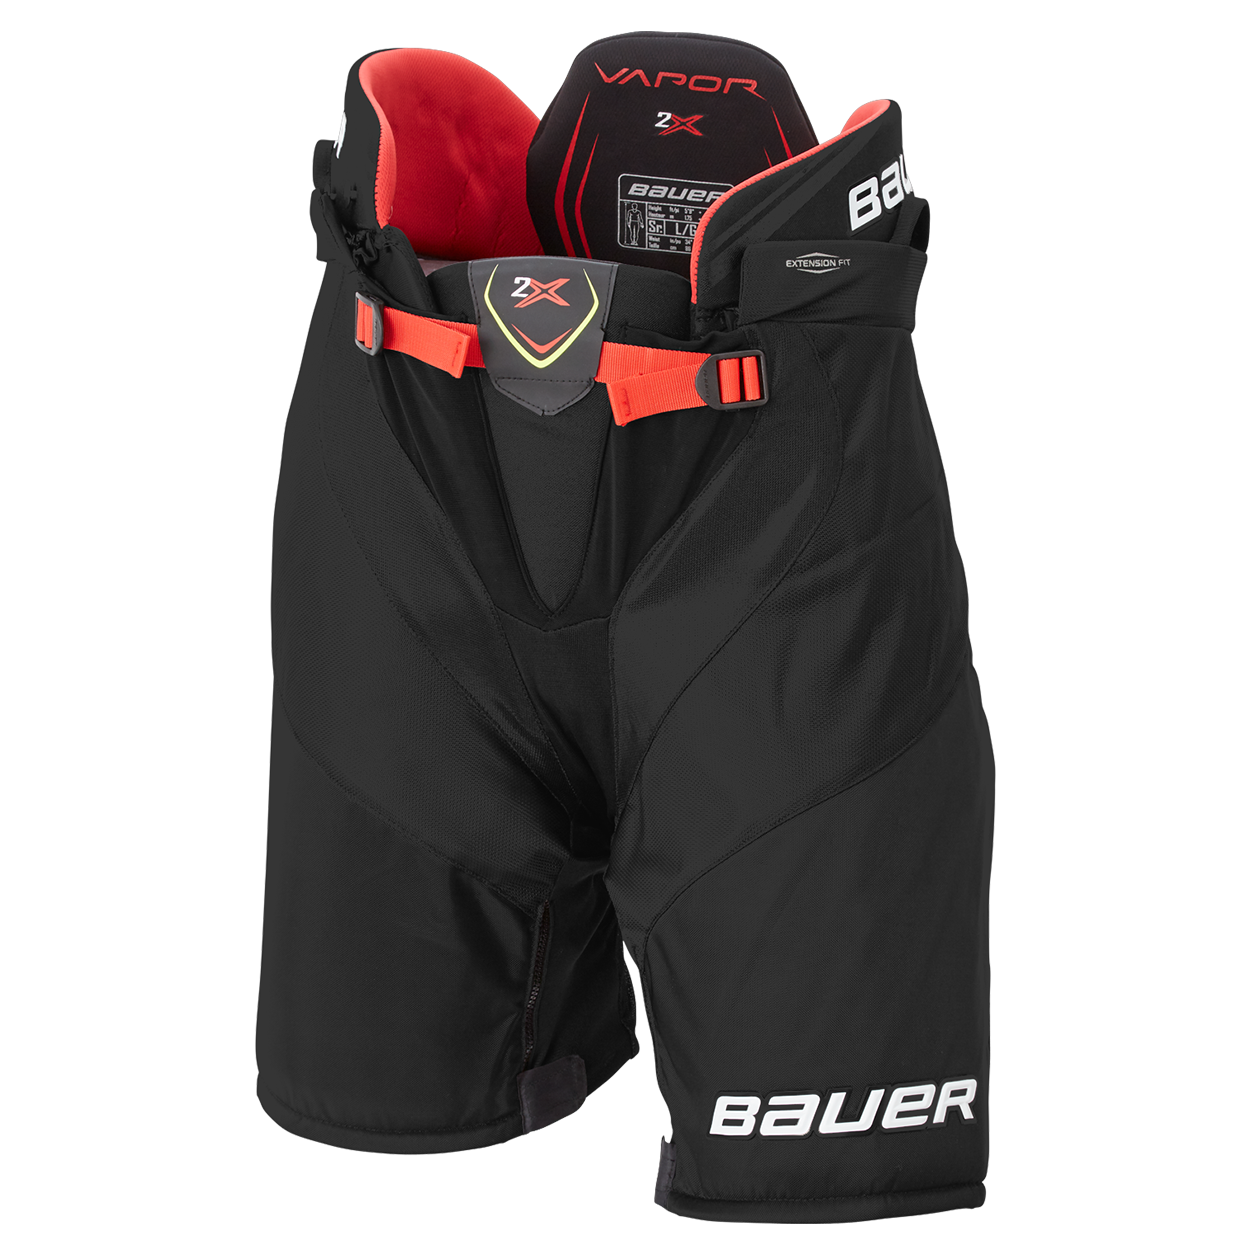 VAPOR 2X Pants Junior,Schwarz,Medium